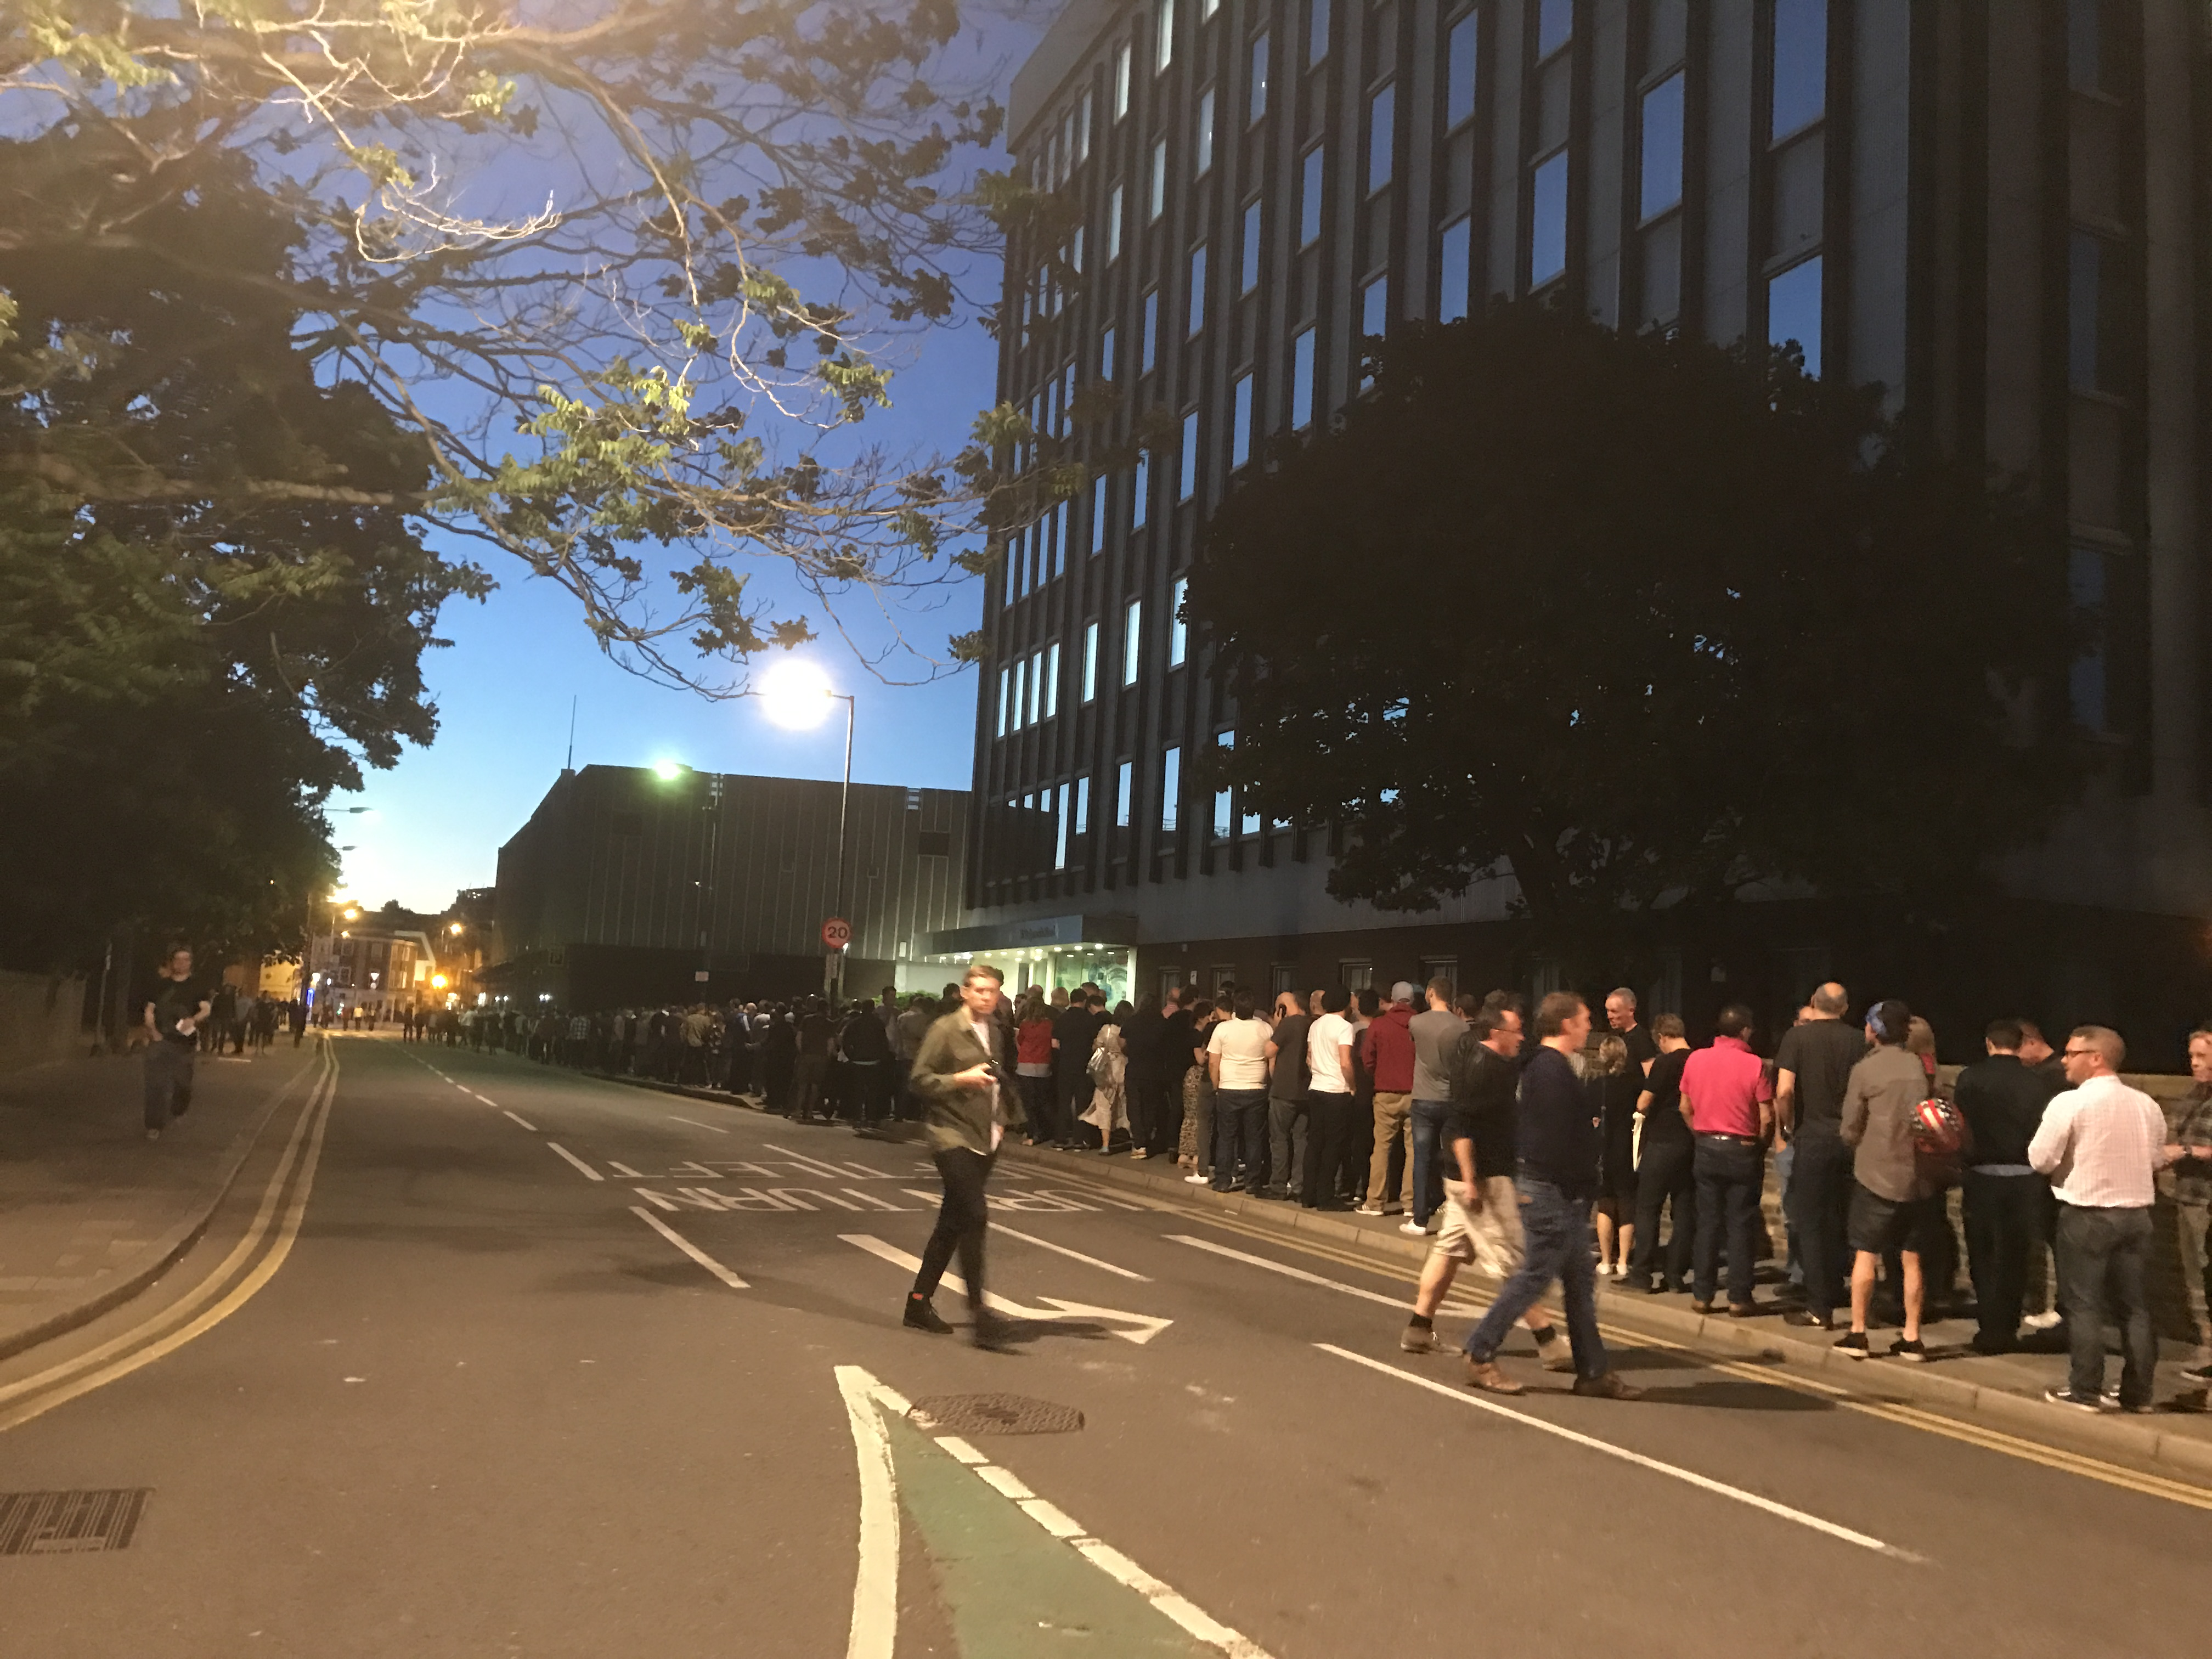 Kingston locals queue to see The Charlatans at The Hippodrome (May 2017)